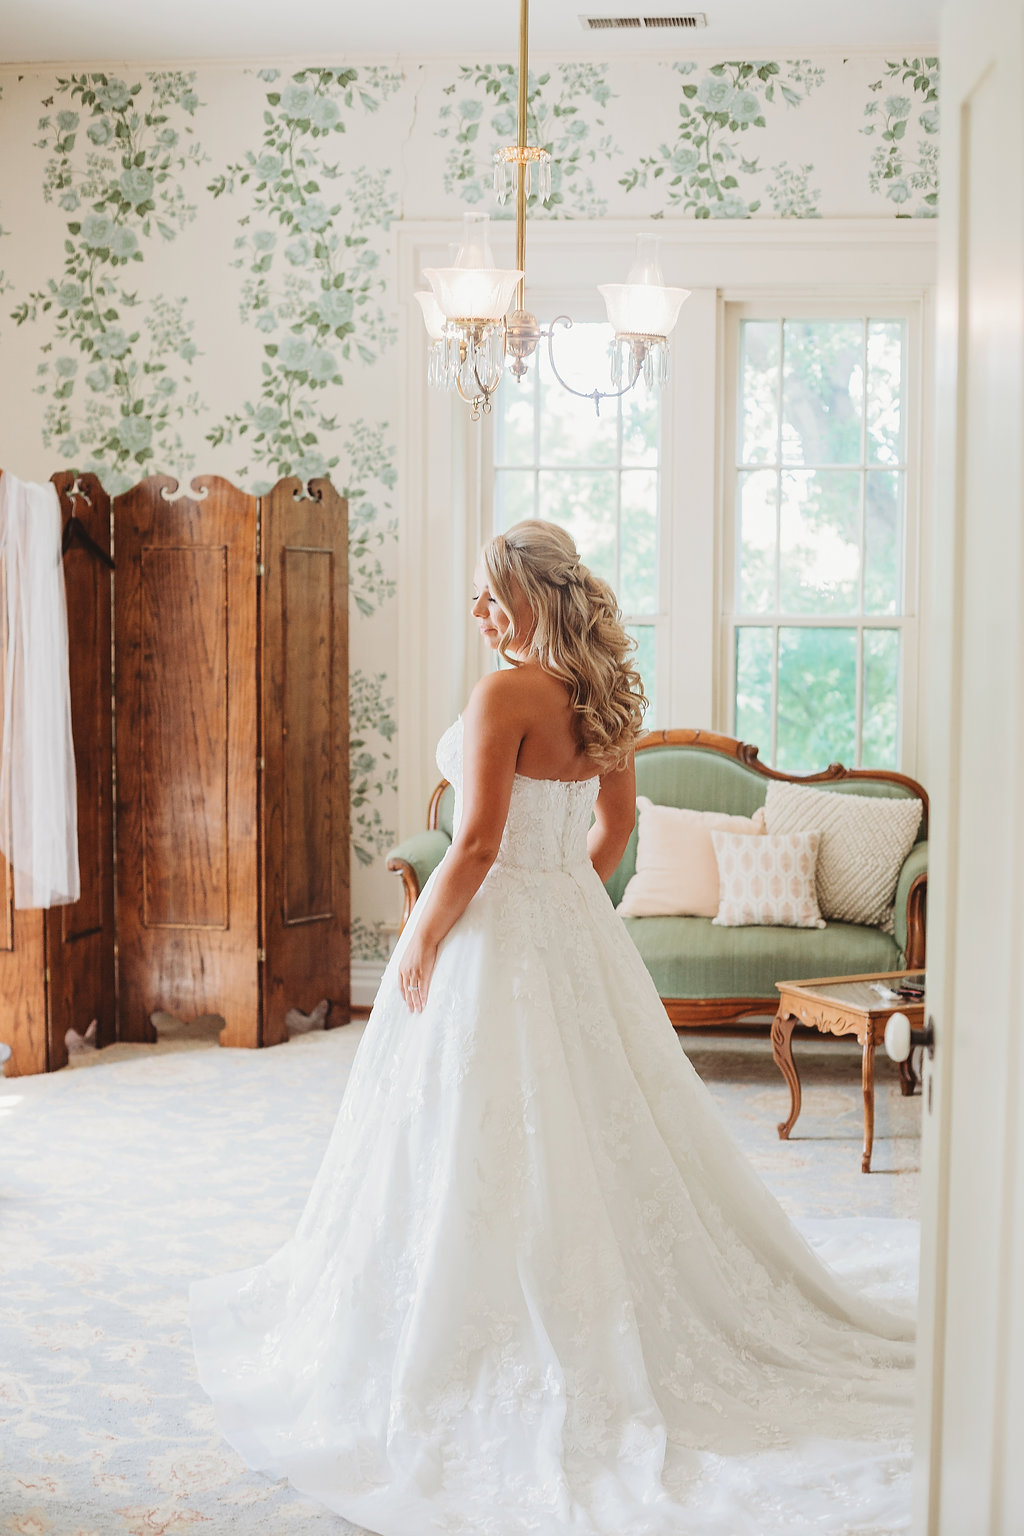 Bride in bridal suite at Warrenwood Manor